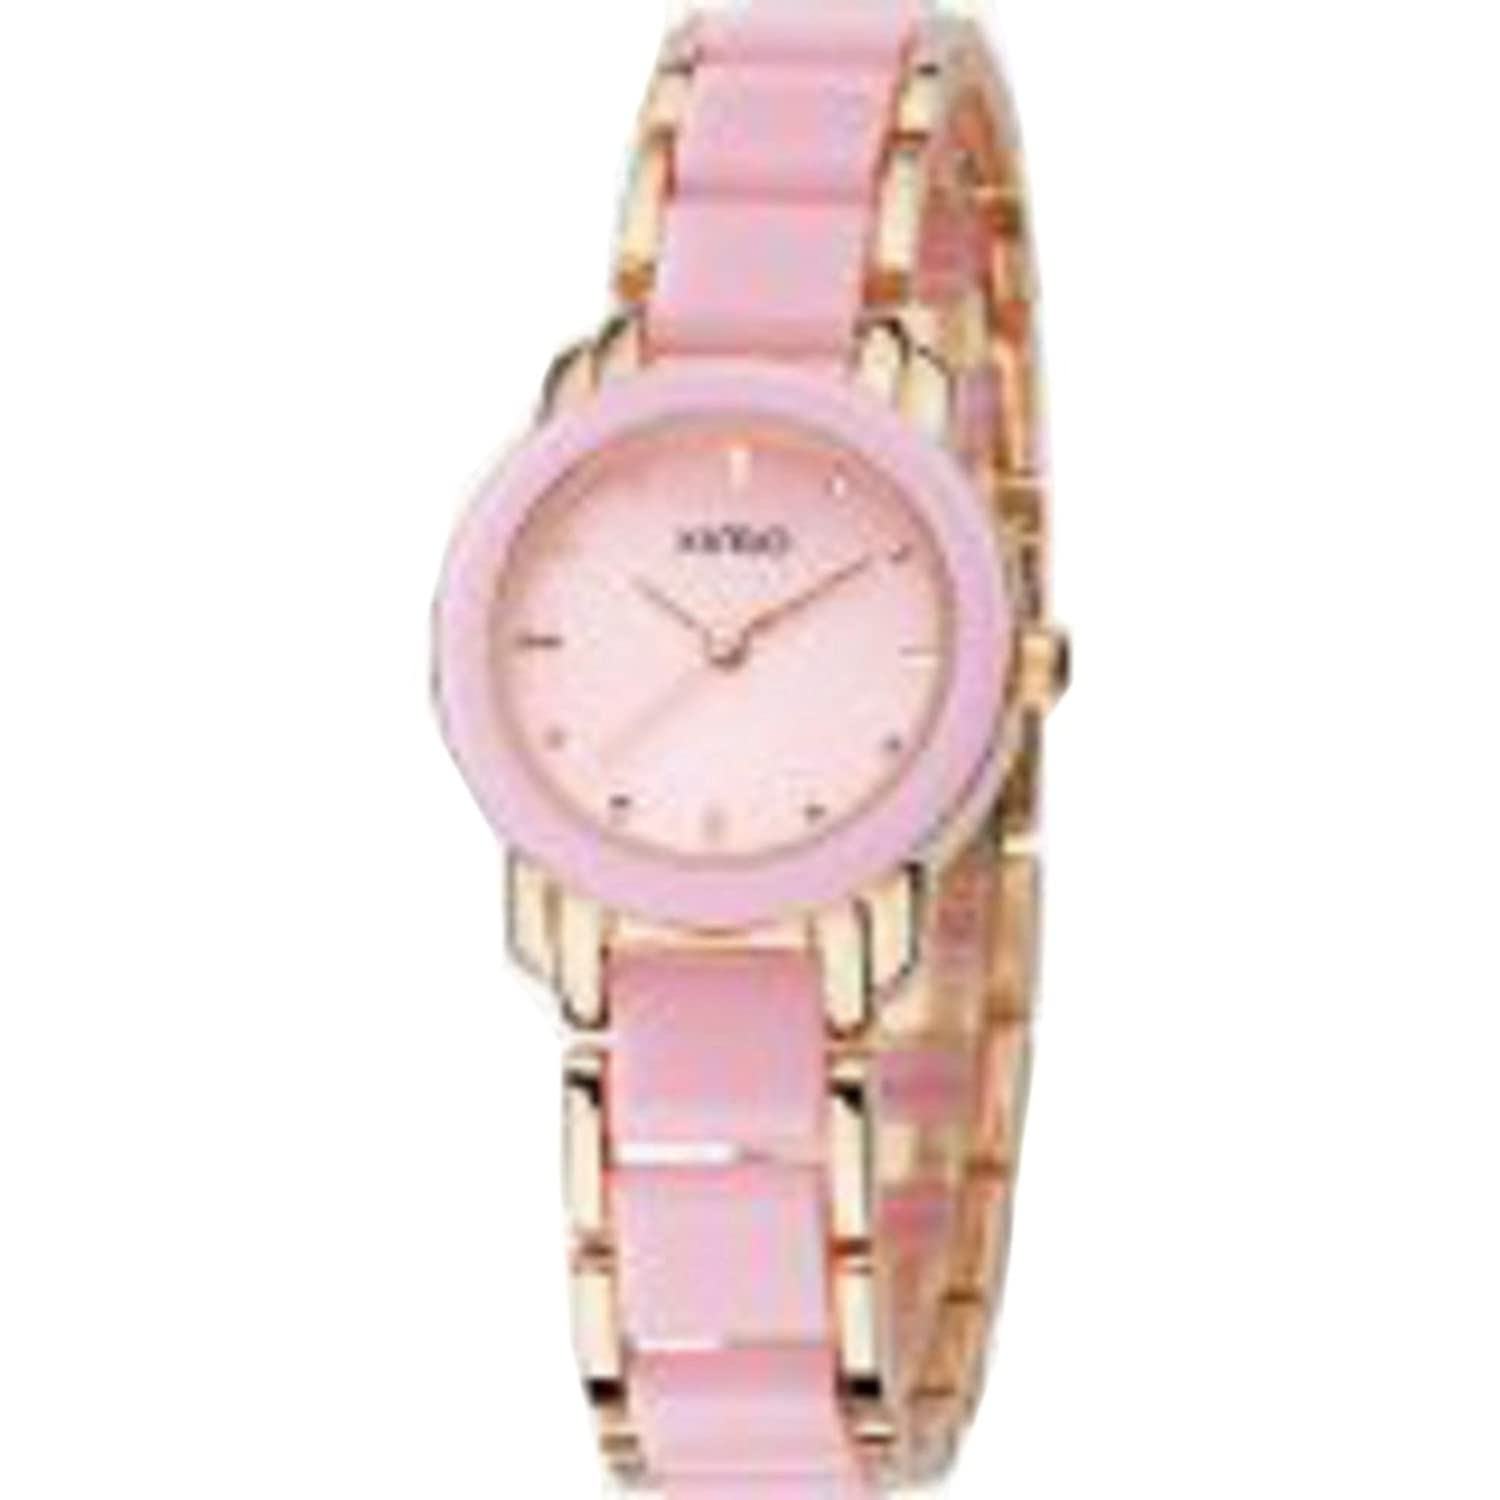 Amazon.com: KIMIO K455L-SRG04 Fashion Ladies Quartz Wristwatches Stainless Steel Pink mix Golden: Watches